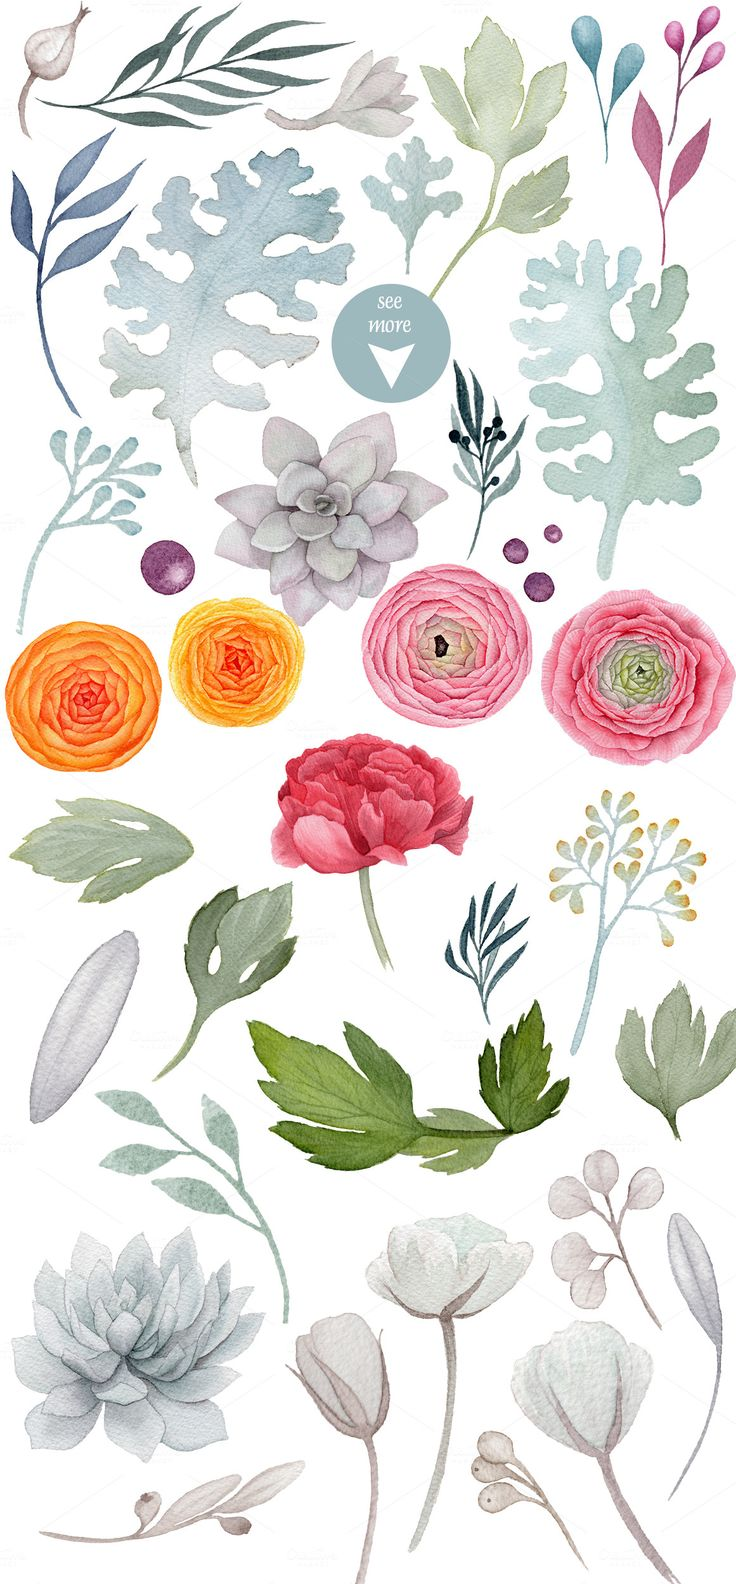 Fantasia - watercolor flowers pack by Watercolor Nomads on Creative Market